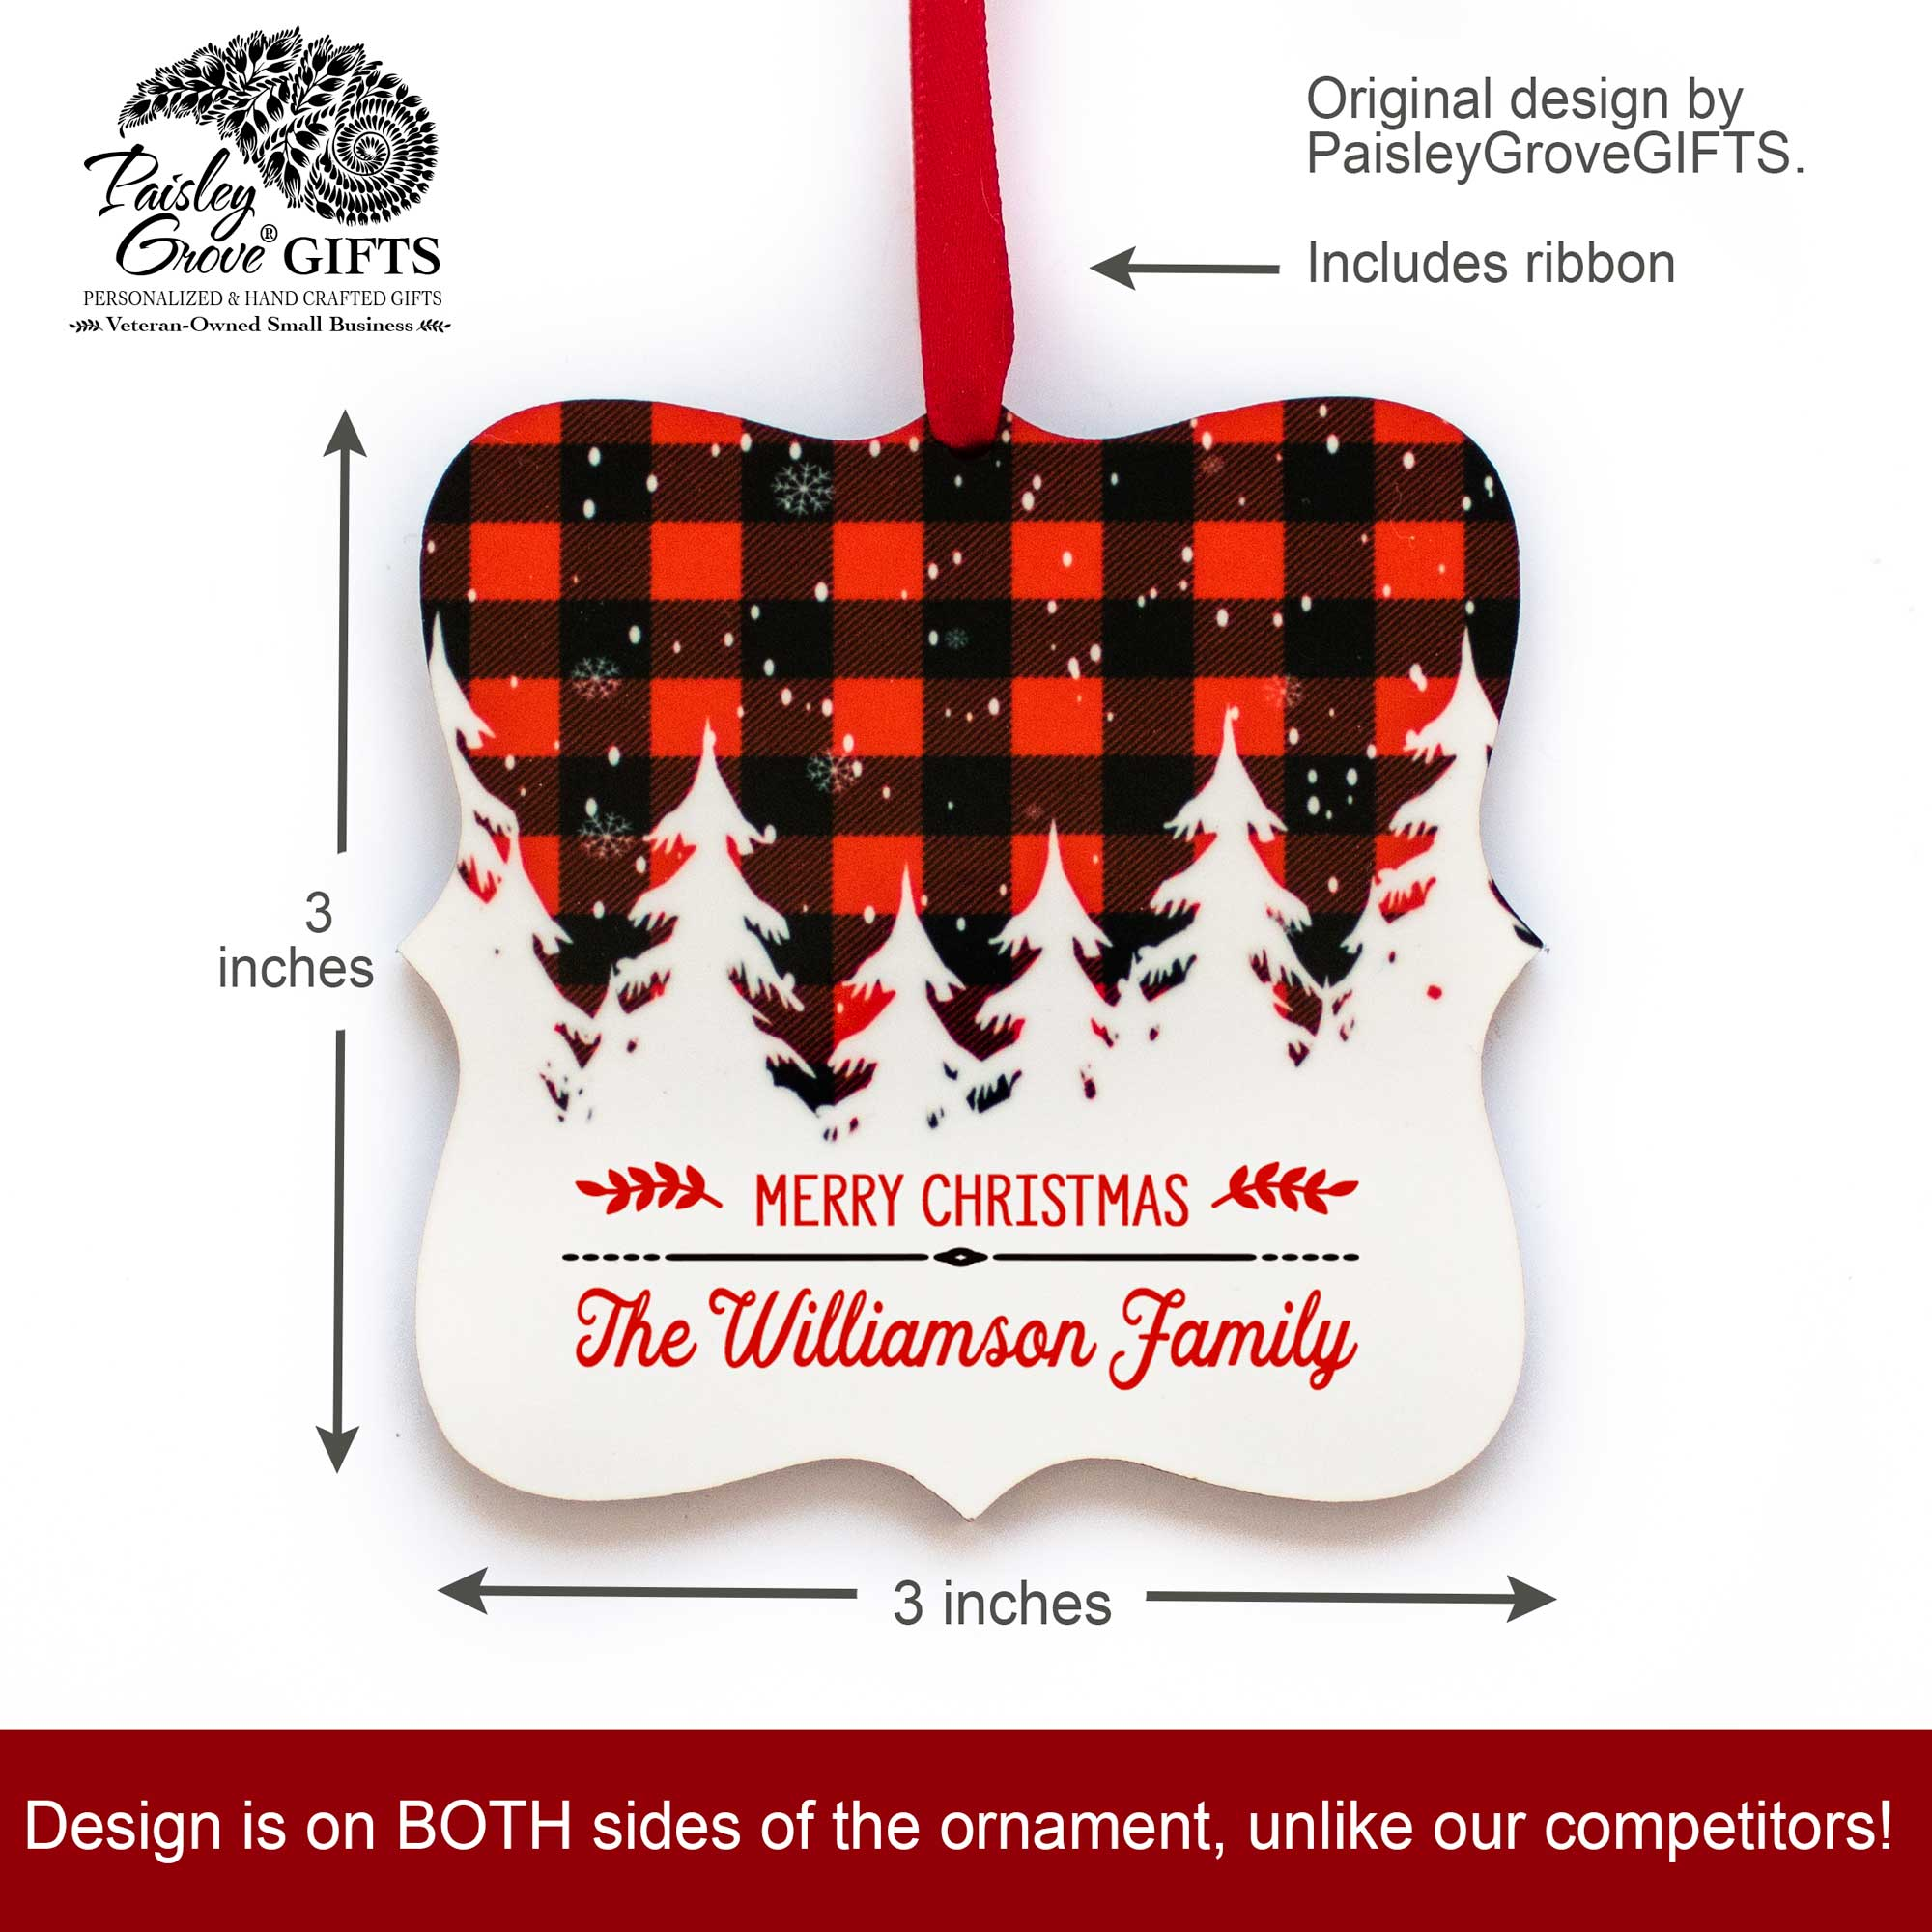 CopyrightPaisleyGroveGIFTS S502b 3x3 inch Holiday Ornament Customized with Last Name Christmas Decor